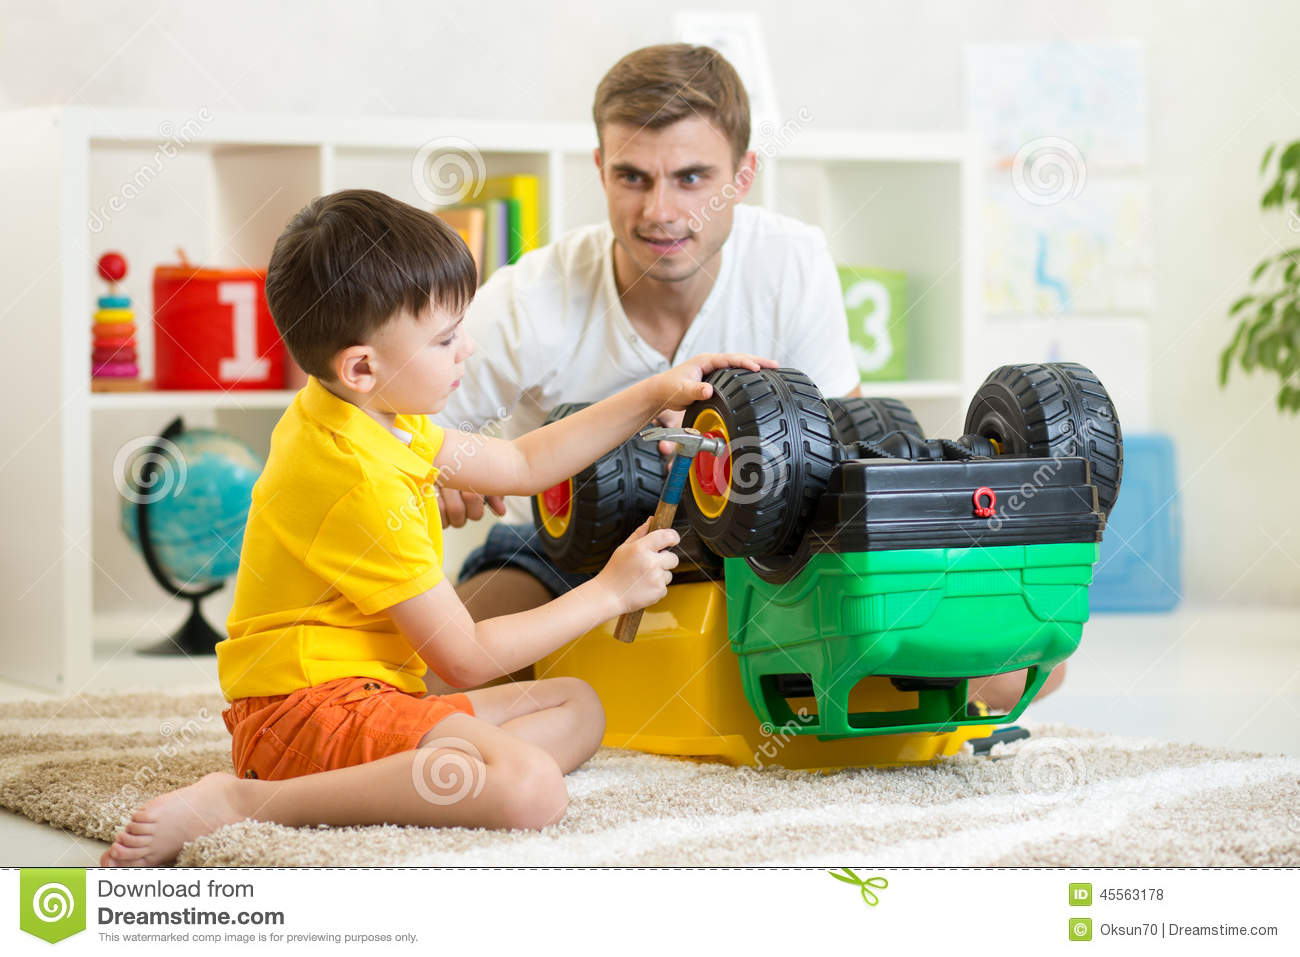 Boy Toys For Dads : Kid boy and his father repair toy car stock image